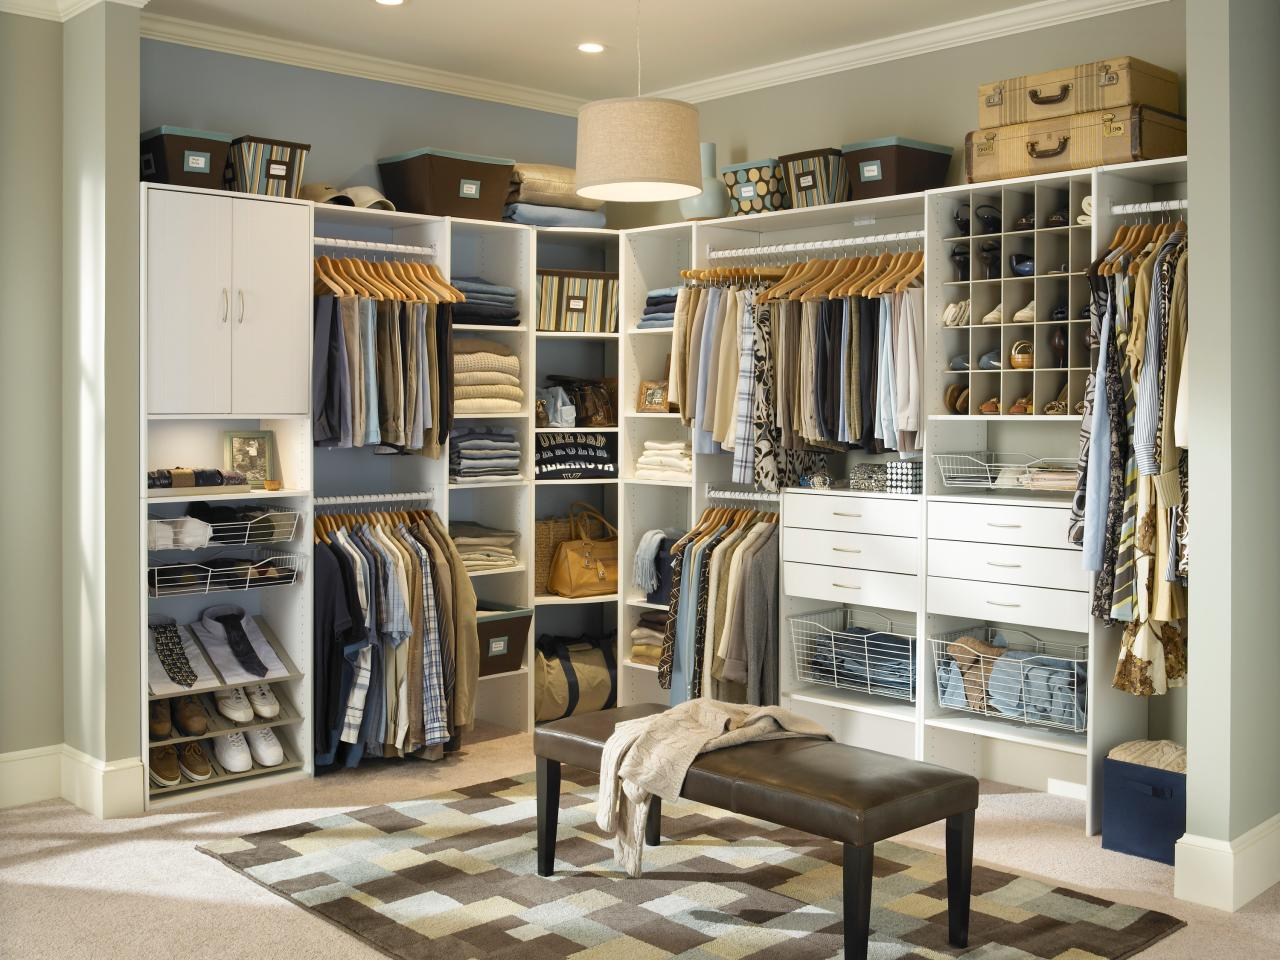 Bedroom Closet Design. All In The Details Bedroom Closet Design C ...